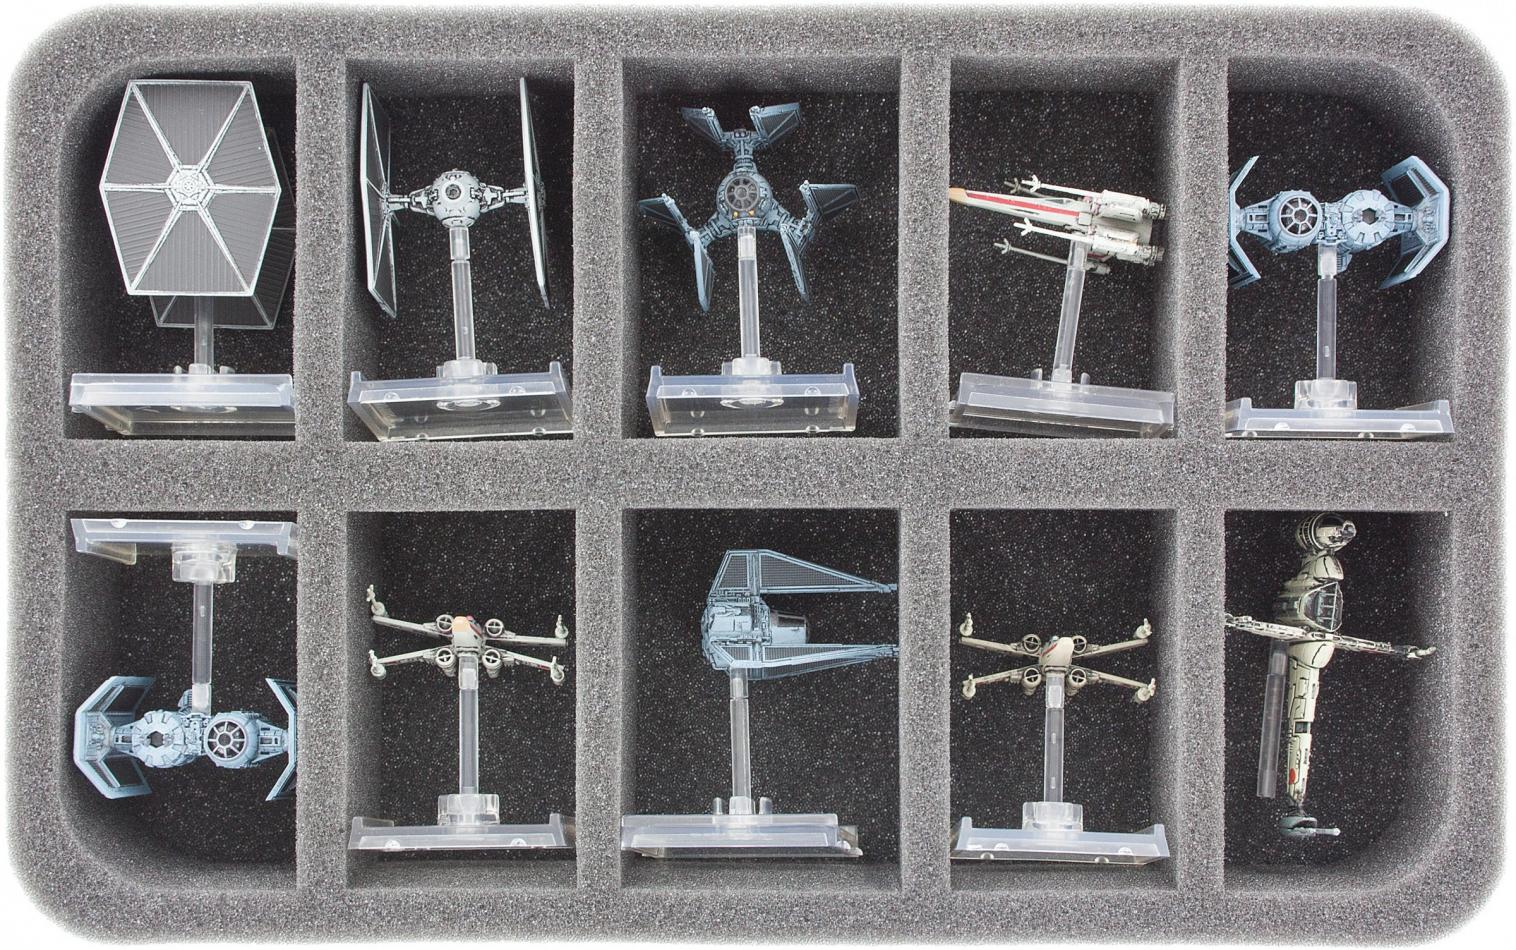 HSBE050BO foam tray for 10 Star Wars X-WING Star Ships with base